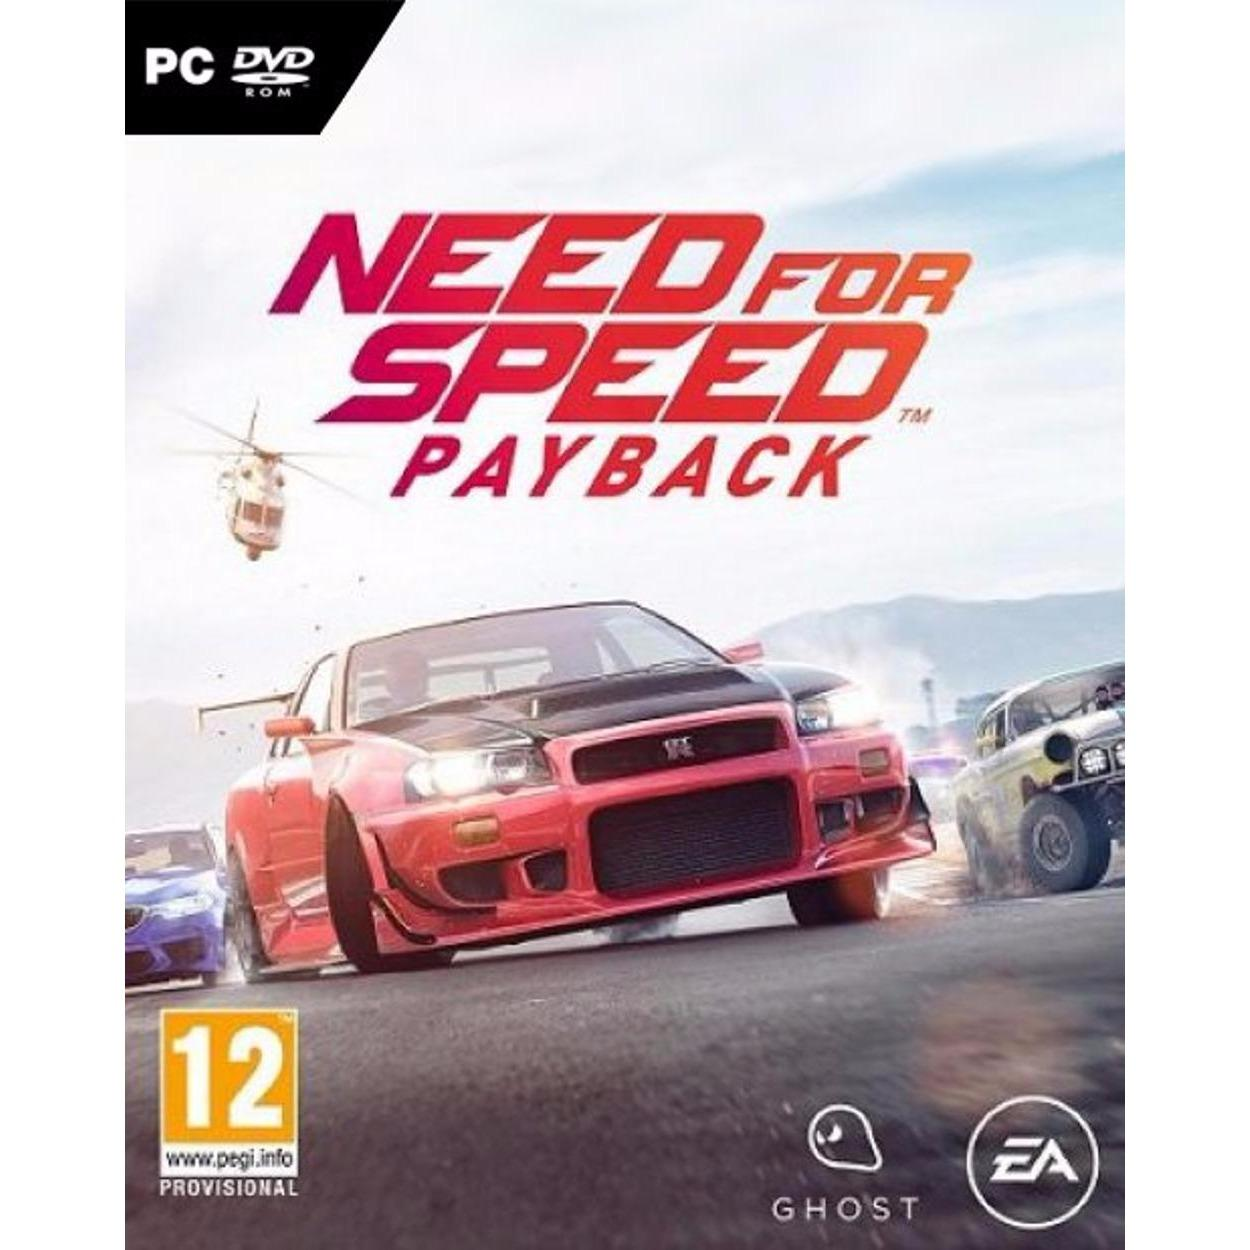 Need For Speed Payback Full Offline PC